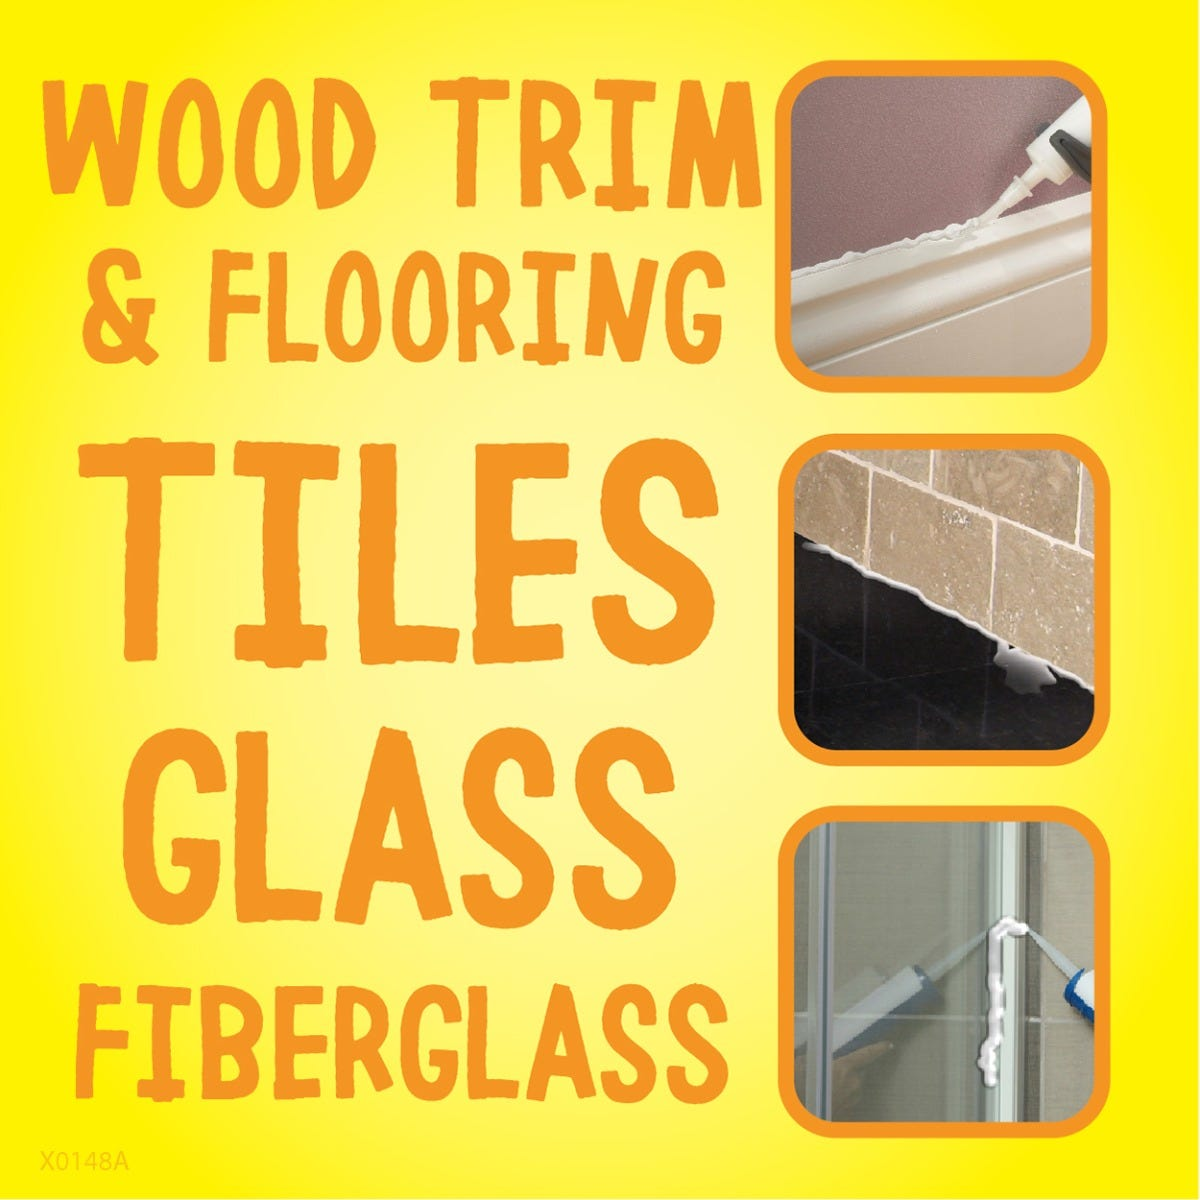 Use on trim, flooring, tiles & glass